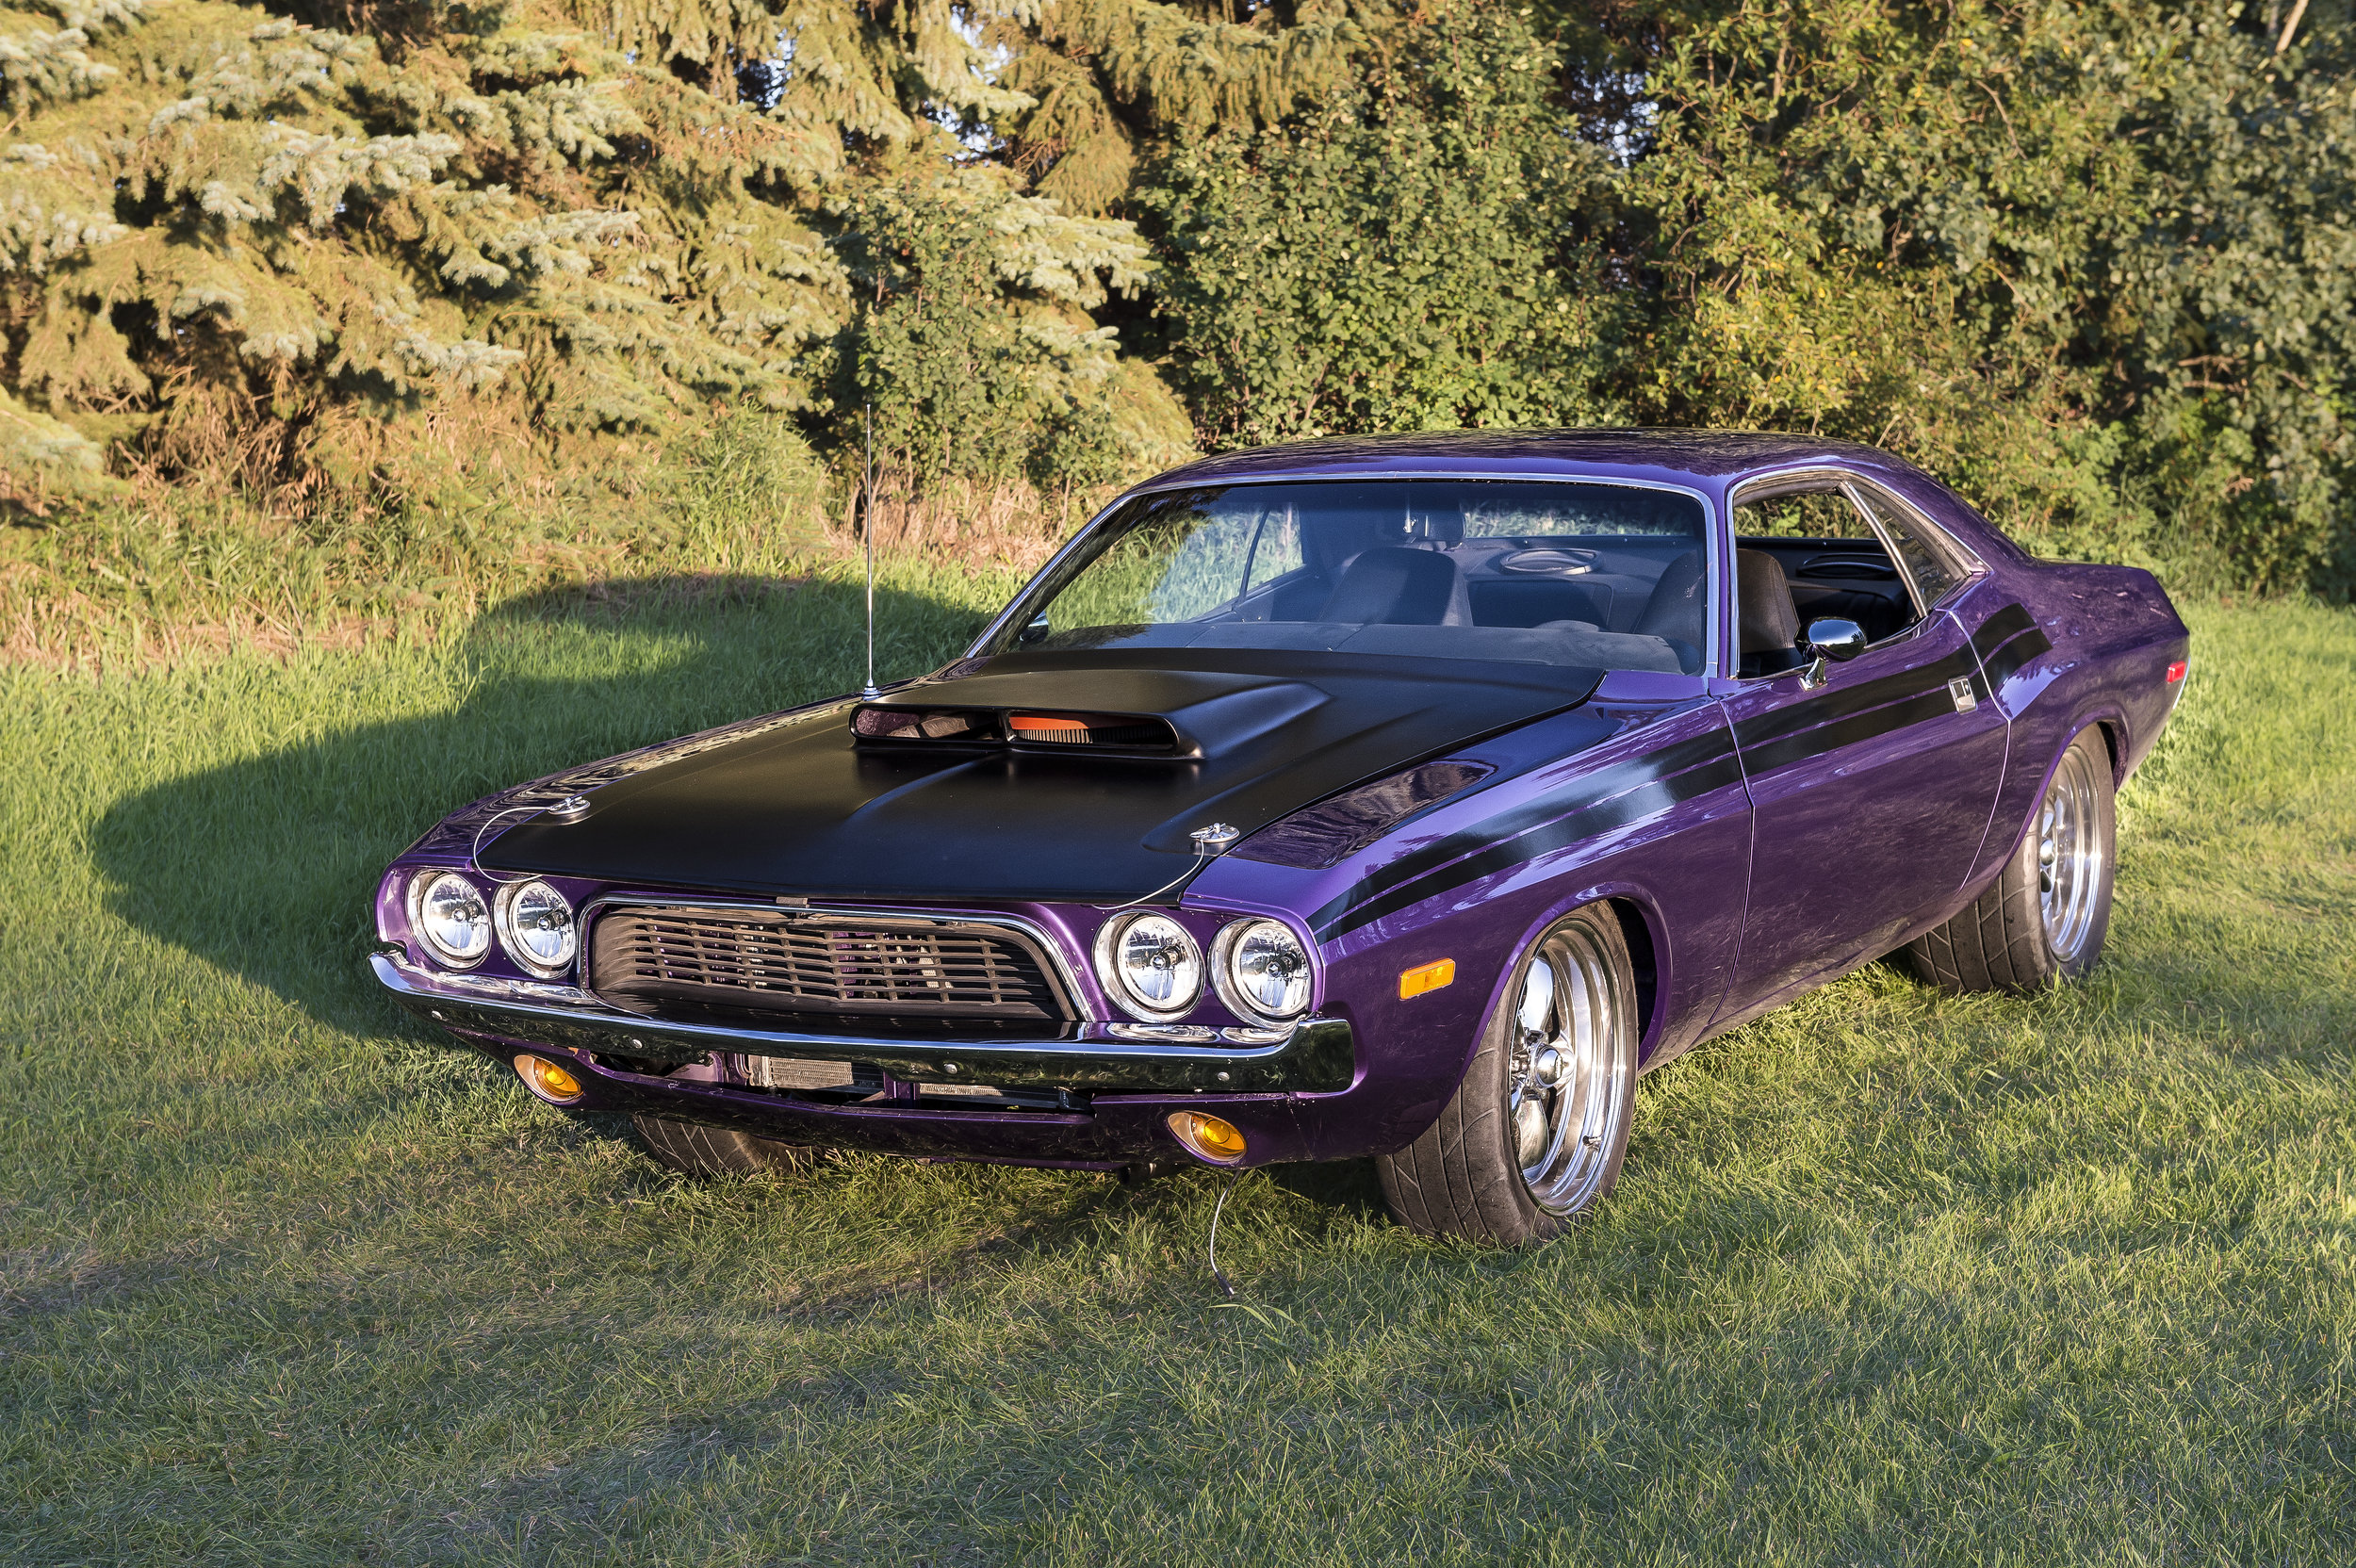 """1974 Dodge Challenger    This Car was complete restored locally in a frame off restoration                                                                 hich took place over a 10 year period. All aspects of the car were Rebuilt and upgraded to show room condition. The car has a 440 engine and 4 speed Standard Transmission. It has an 8-3/4 """"Rear Diff and is painted factory crazy purple. You will see this car and more at Just Kruzin Kruz nights."""